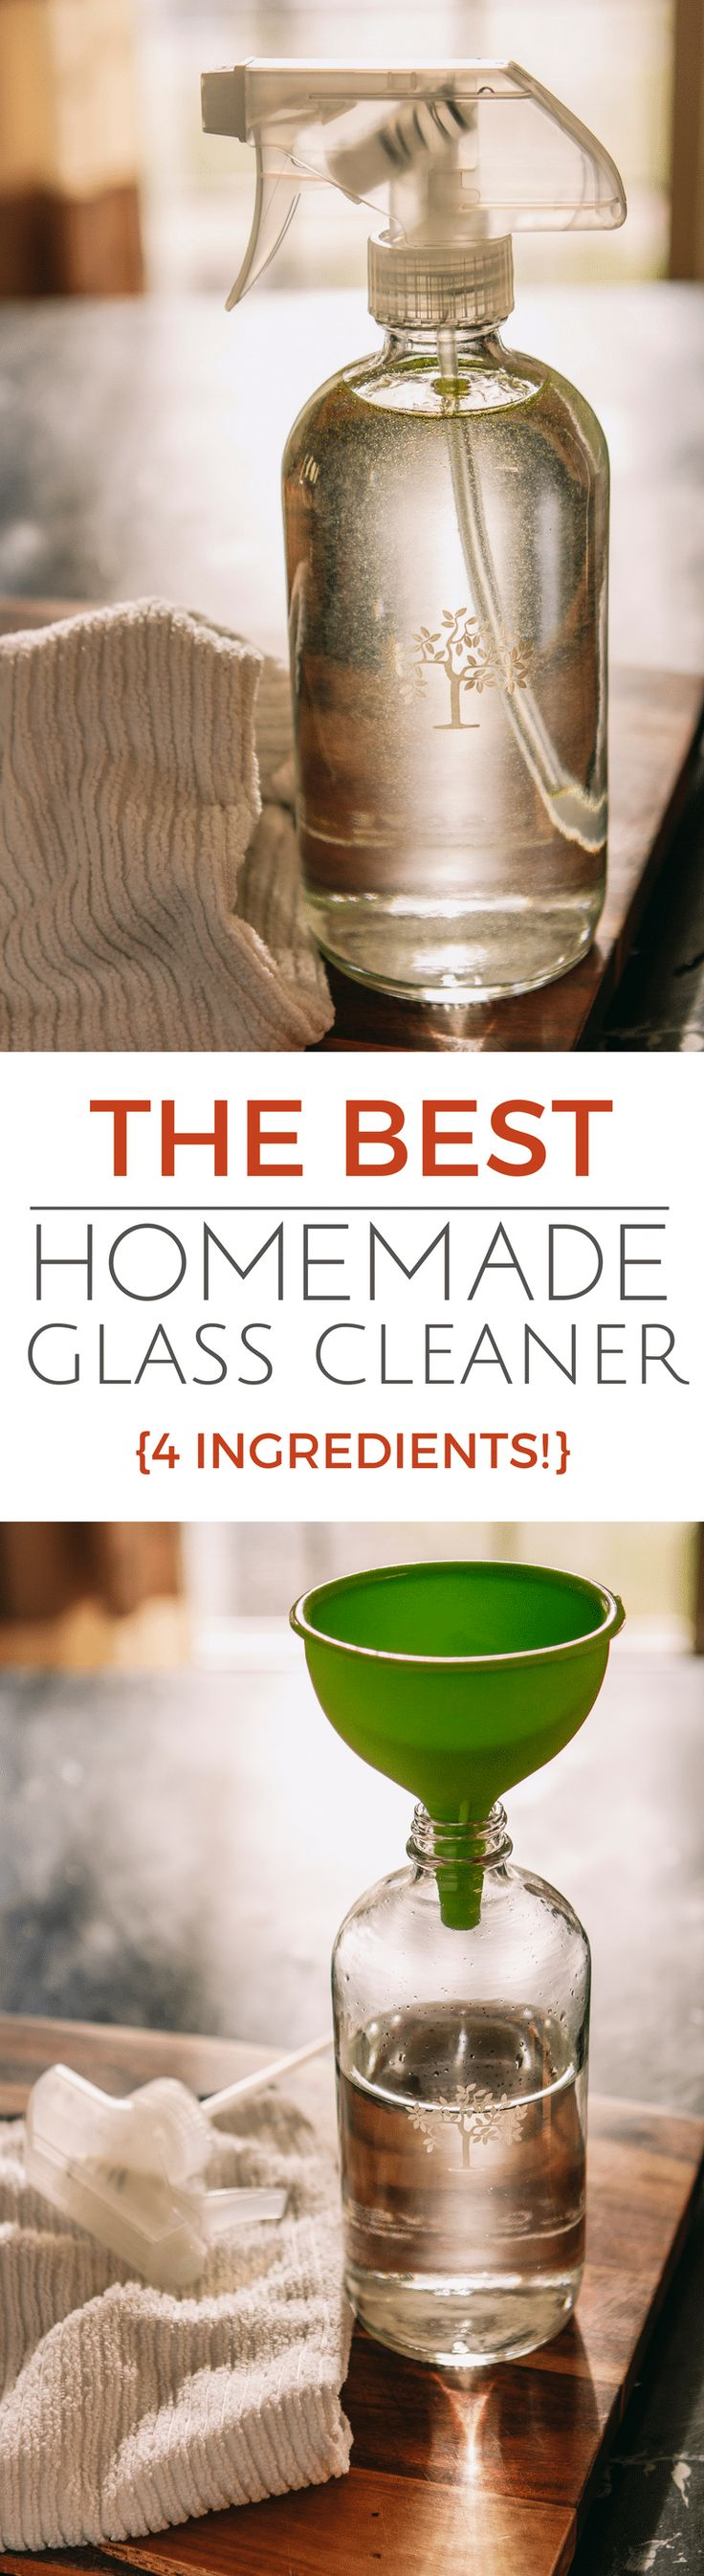 The Best Homemade Glass Cleaner {4 Ingredients} -- truly the best dang homemade glass cleaner you will try… Easy, streak free & non-toxic AND it's just 4 ingredients! | diy glass cleaner | glass cleaner recipe | cleaning ideas | cleaning products | essential oil recipes | find the tutorial on unsophisticook.com